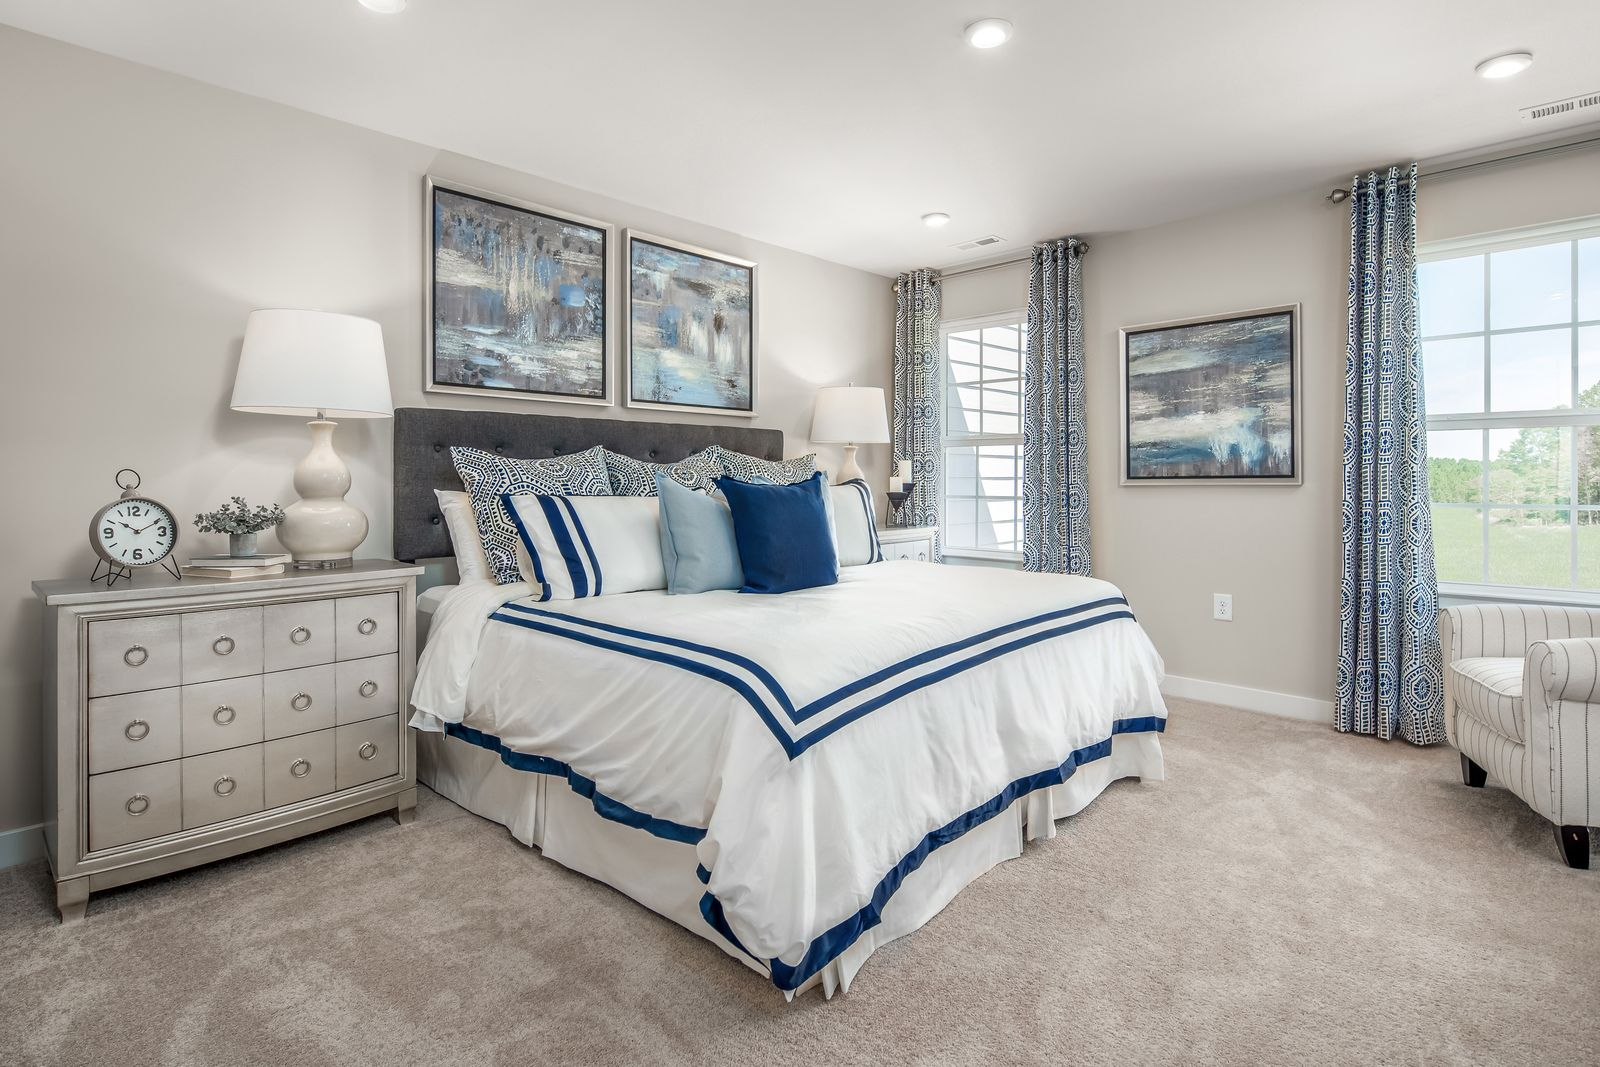 Bedroom featured in the Mendelssohn Front Entry Garage By Ryan Homes in Greenville-Spartanburg, SC